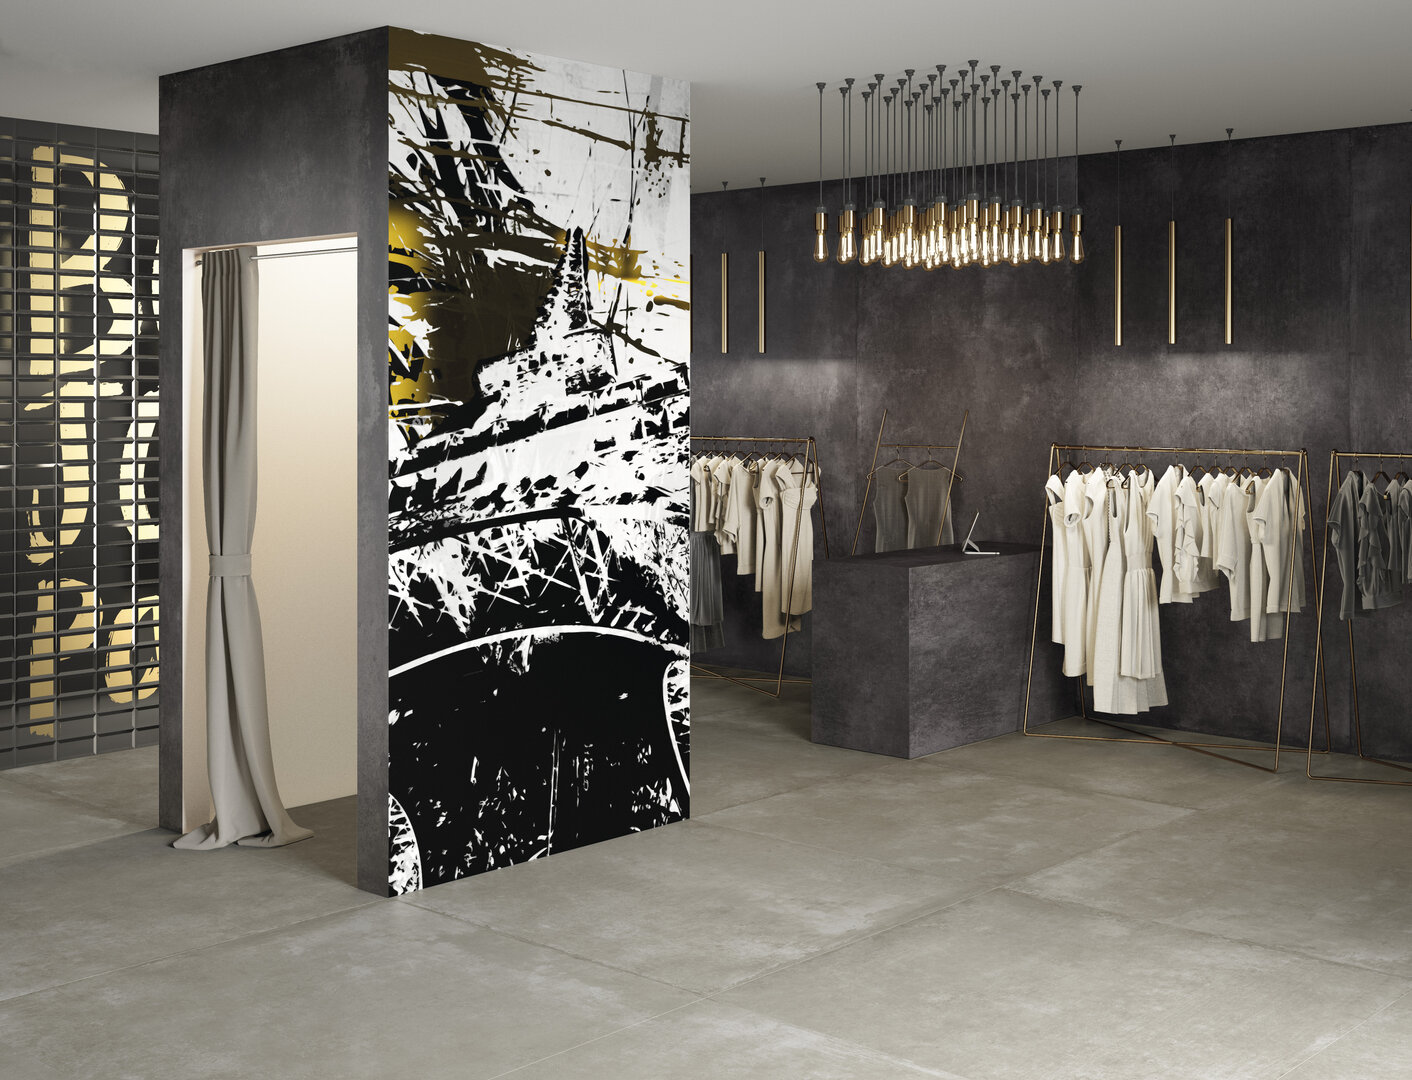 Decorazione on demand per lastre ceramiche Iris